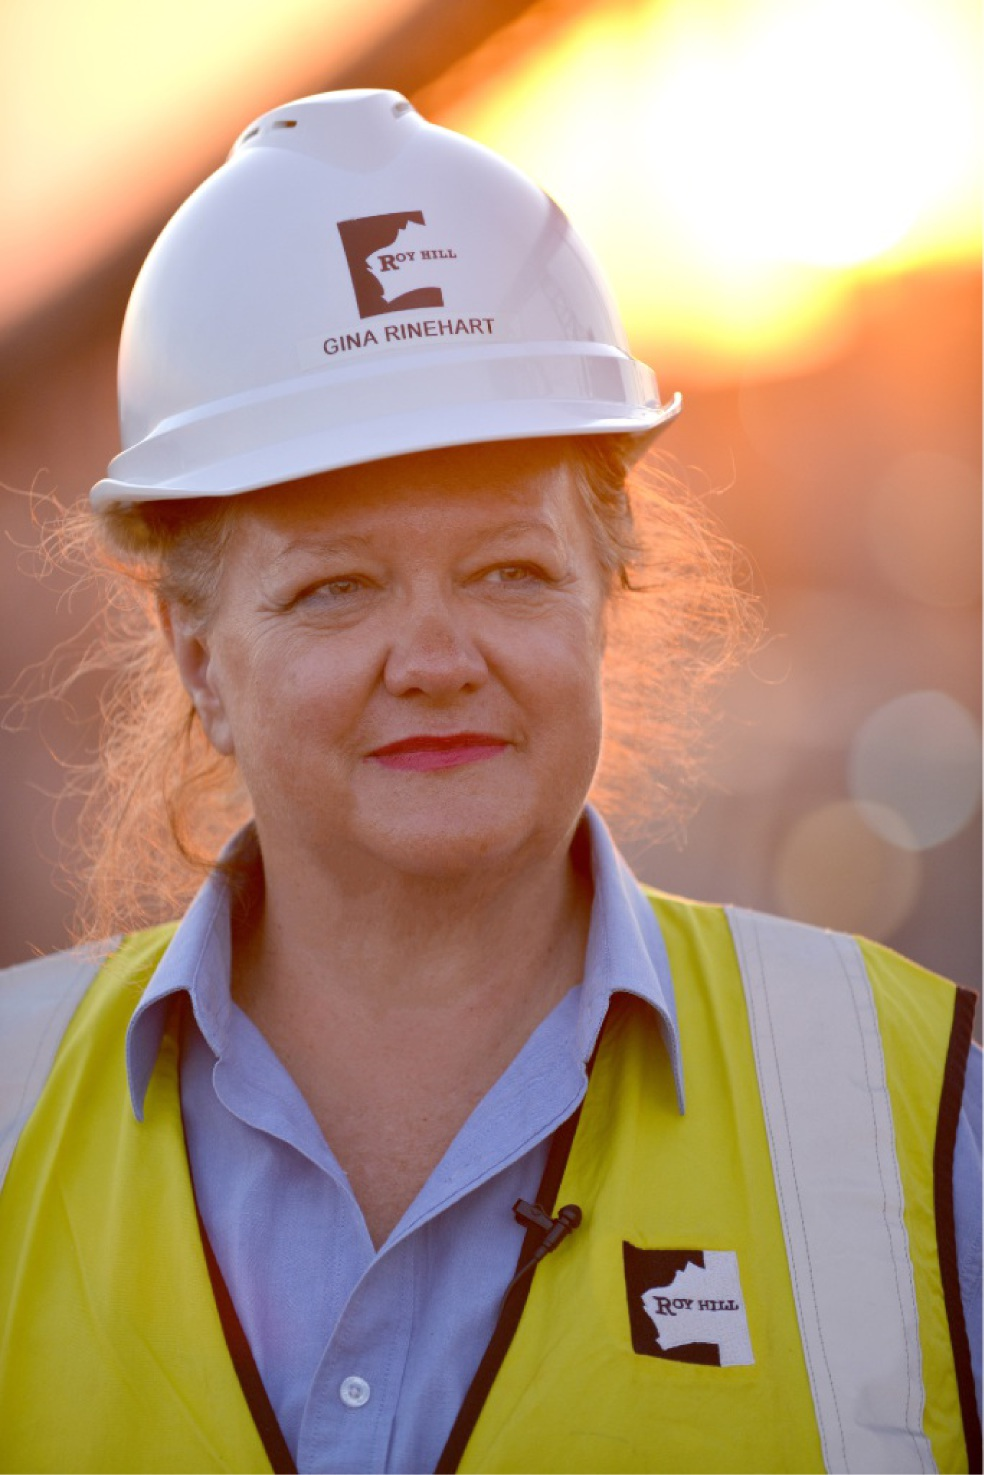 Gina Rinehart: Momentum Most Inspiring Woman of the Year.